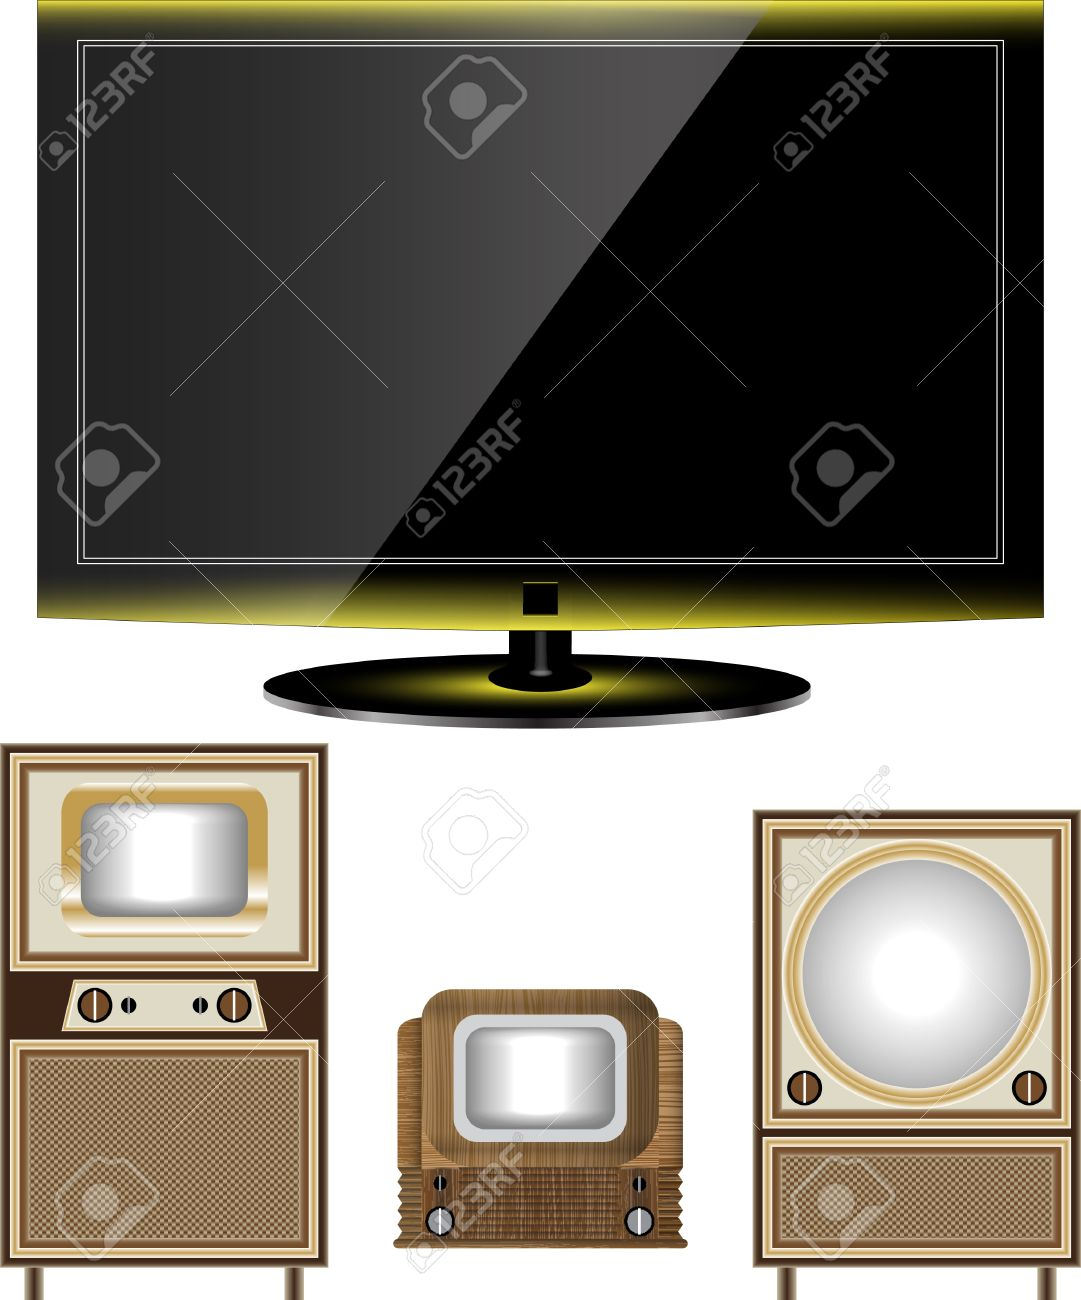 tv old and new Stock Vector - 10437639